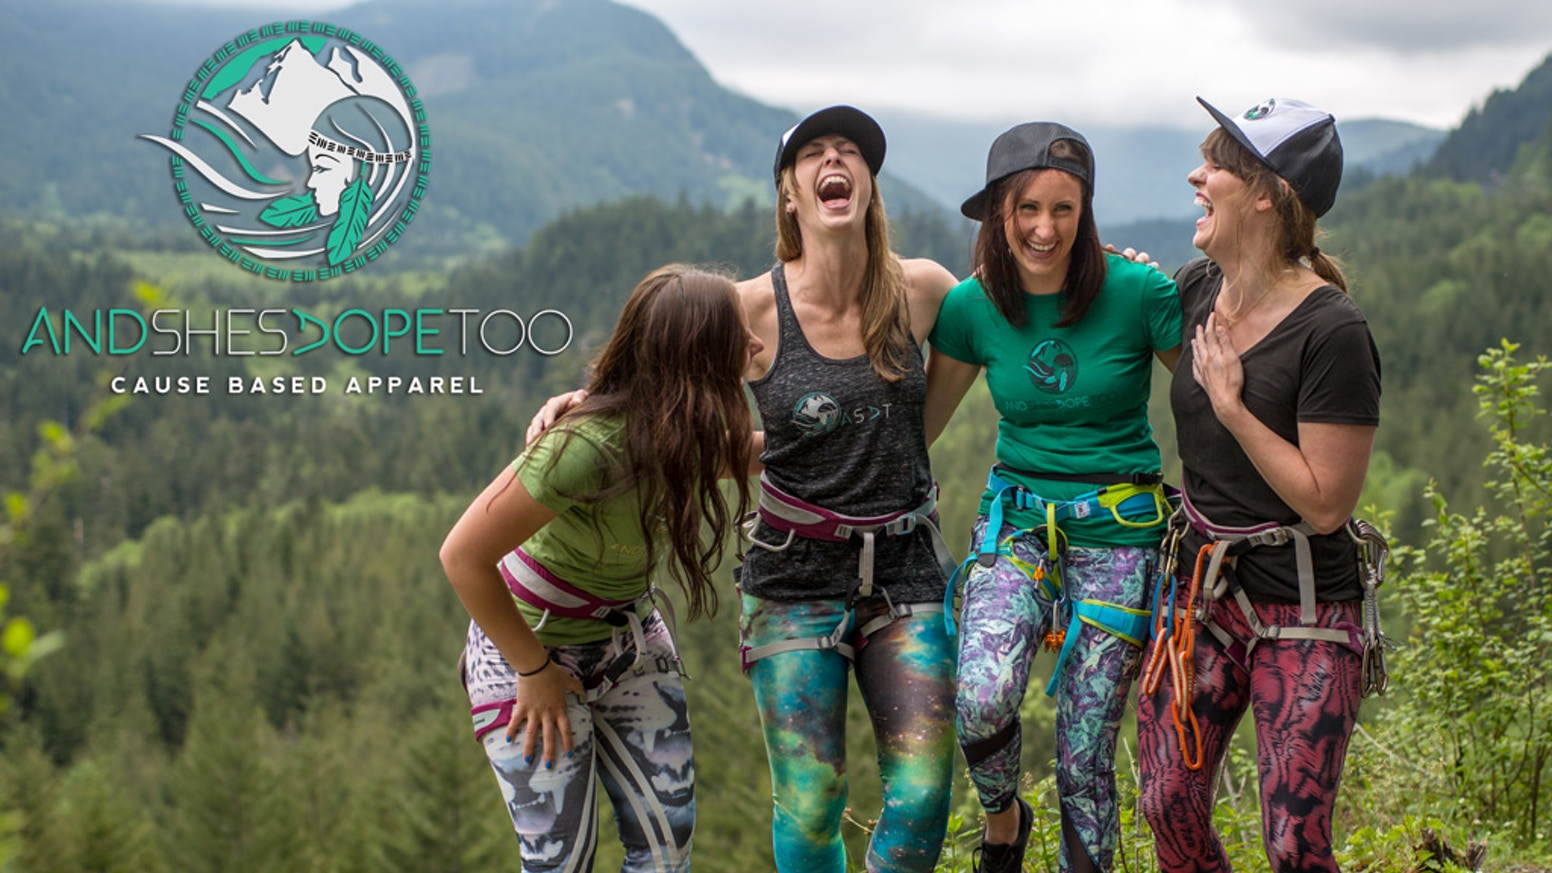 A world-wide collective created to help women pursue an active lifestyle of adventure, support one another & protect our wild places.